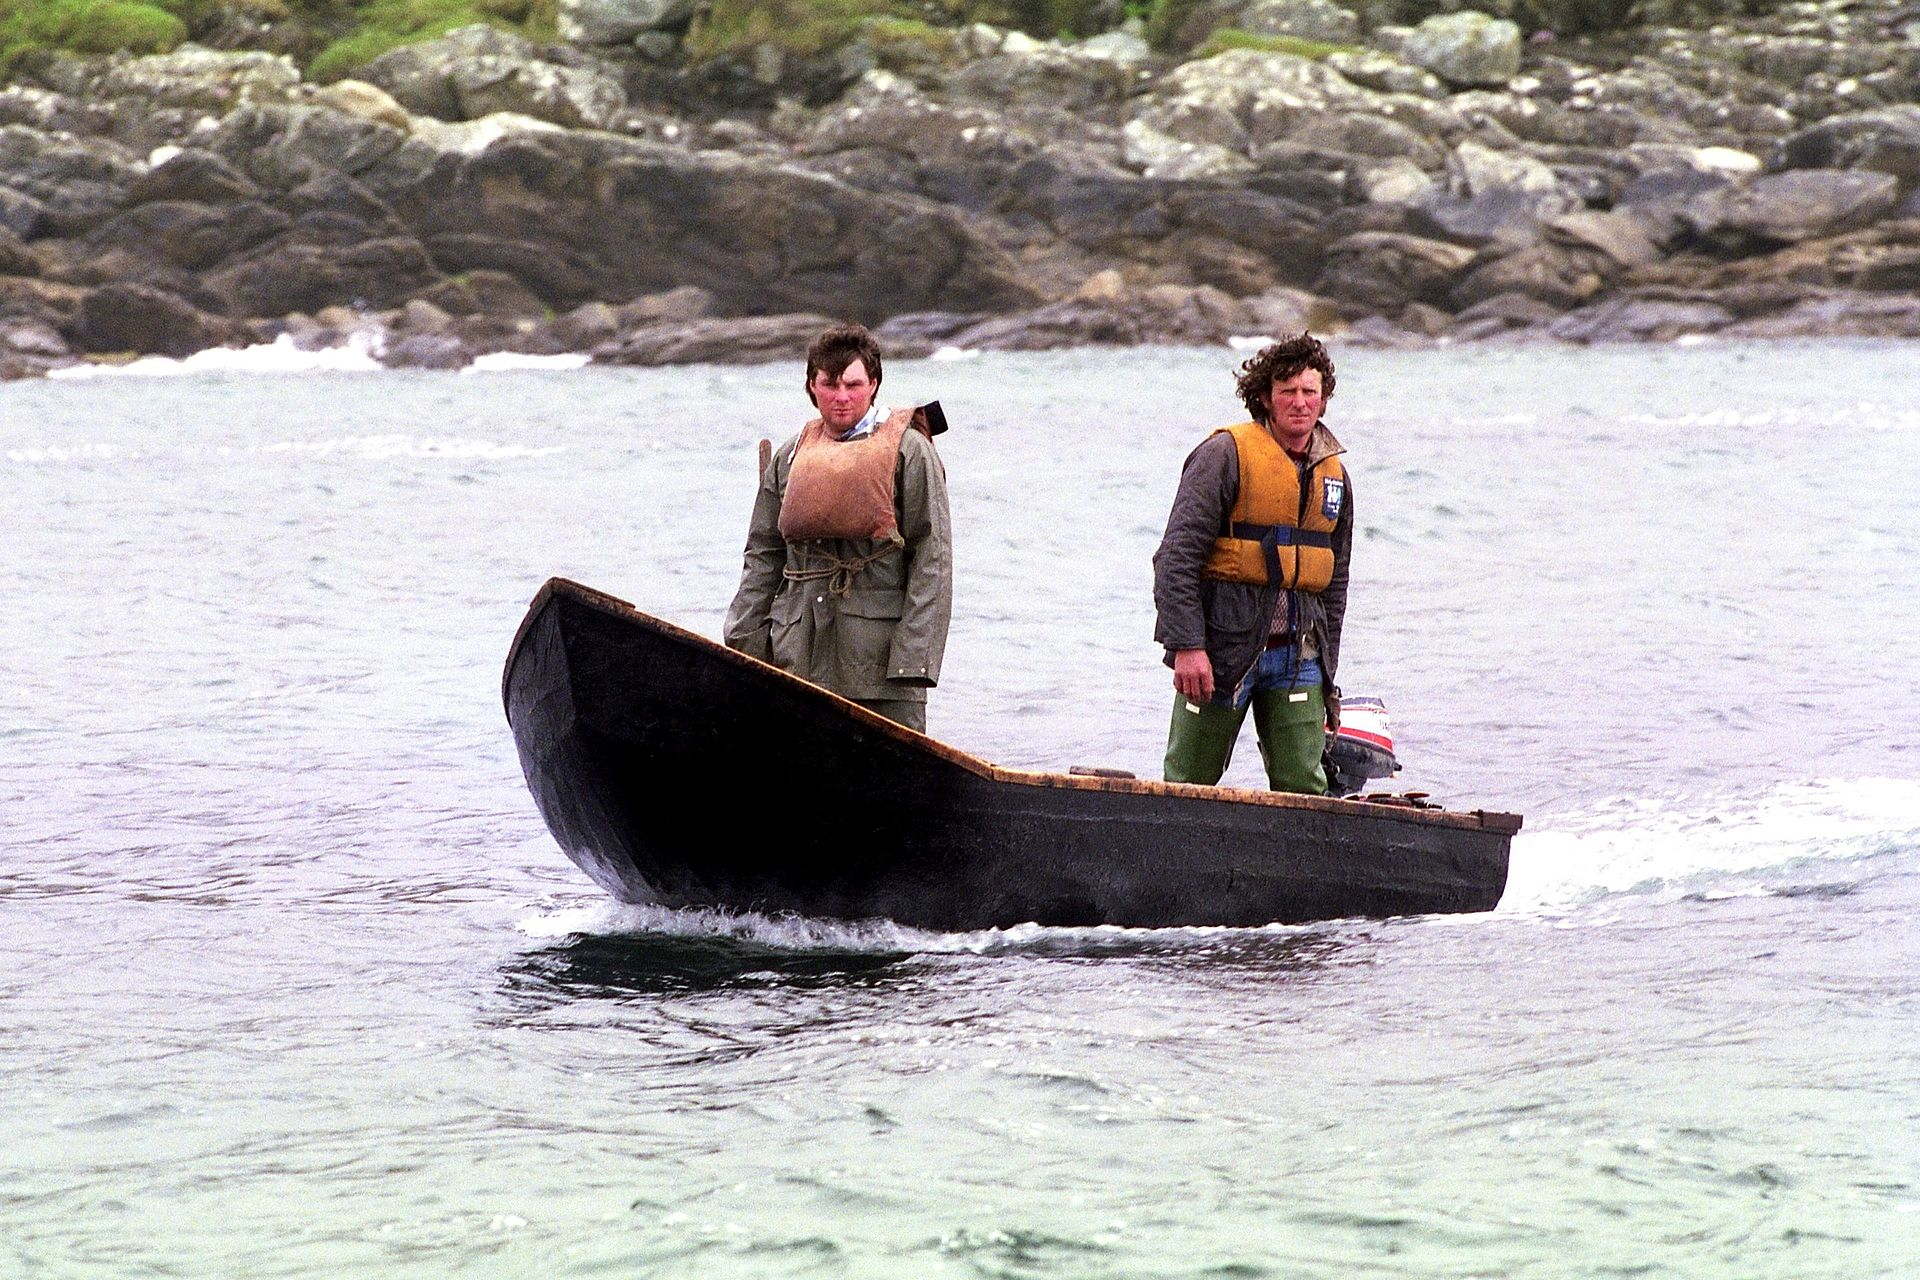 Body of fisherman found; his friend is still missing near Beauharnois